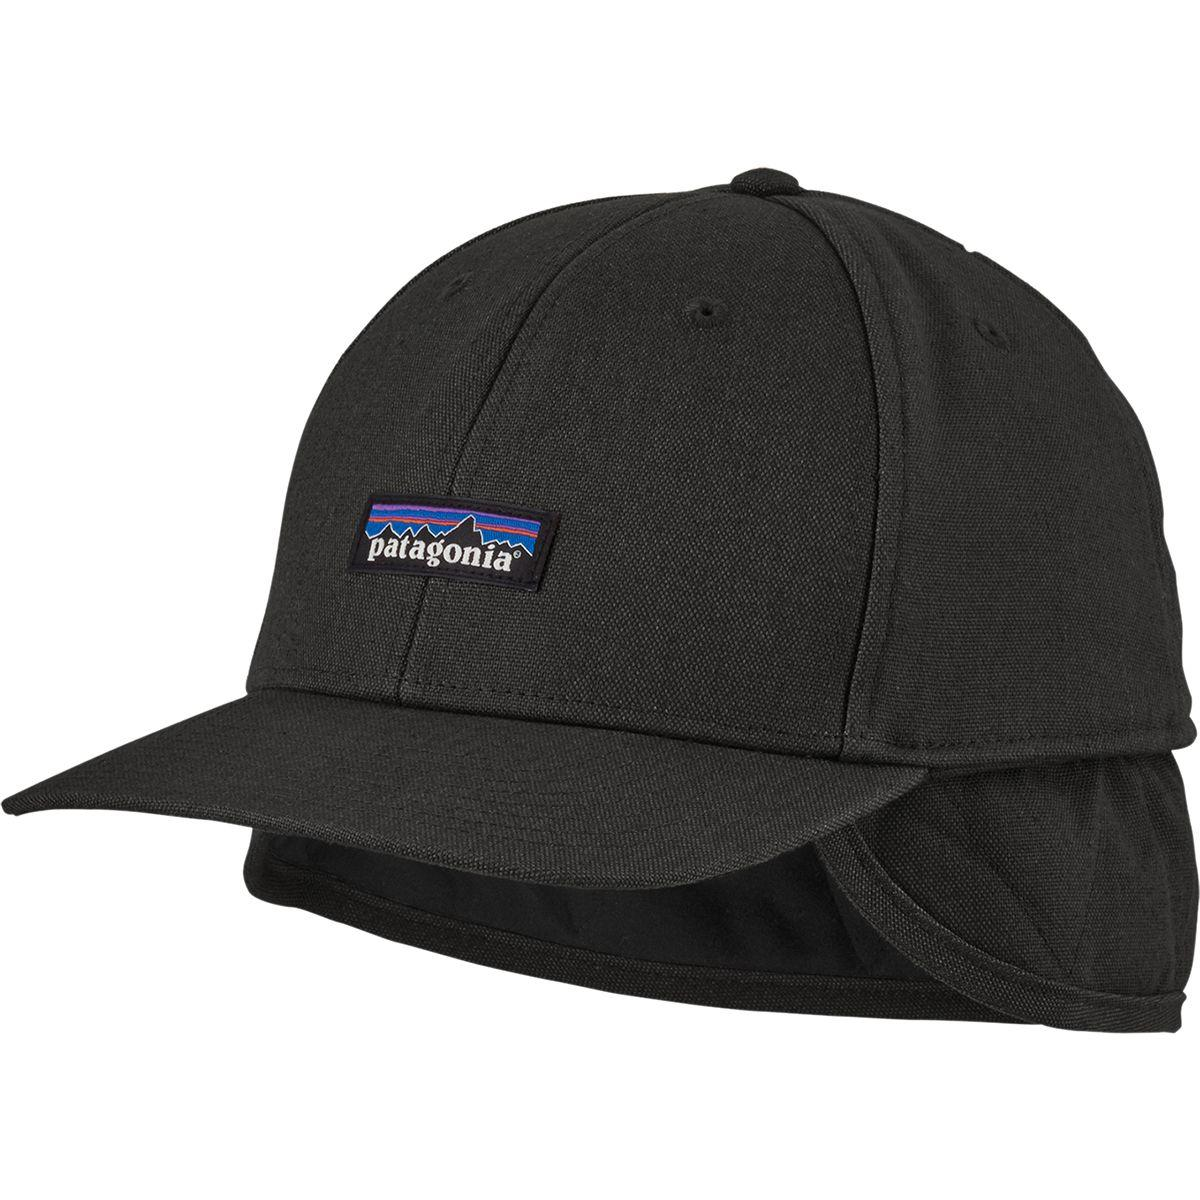 Patagonia Tin Shed Work Hat: Patagonia Cotton Insulated Tin Shed Cap In Black For Men